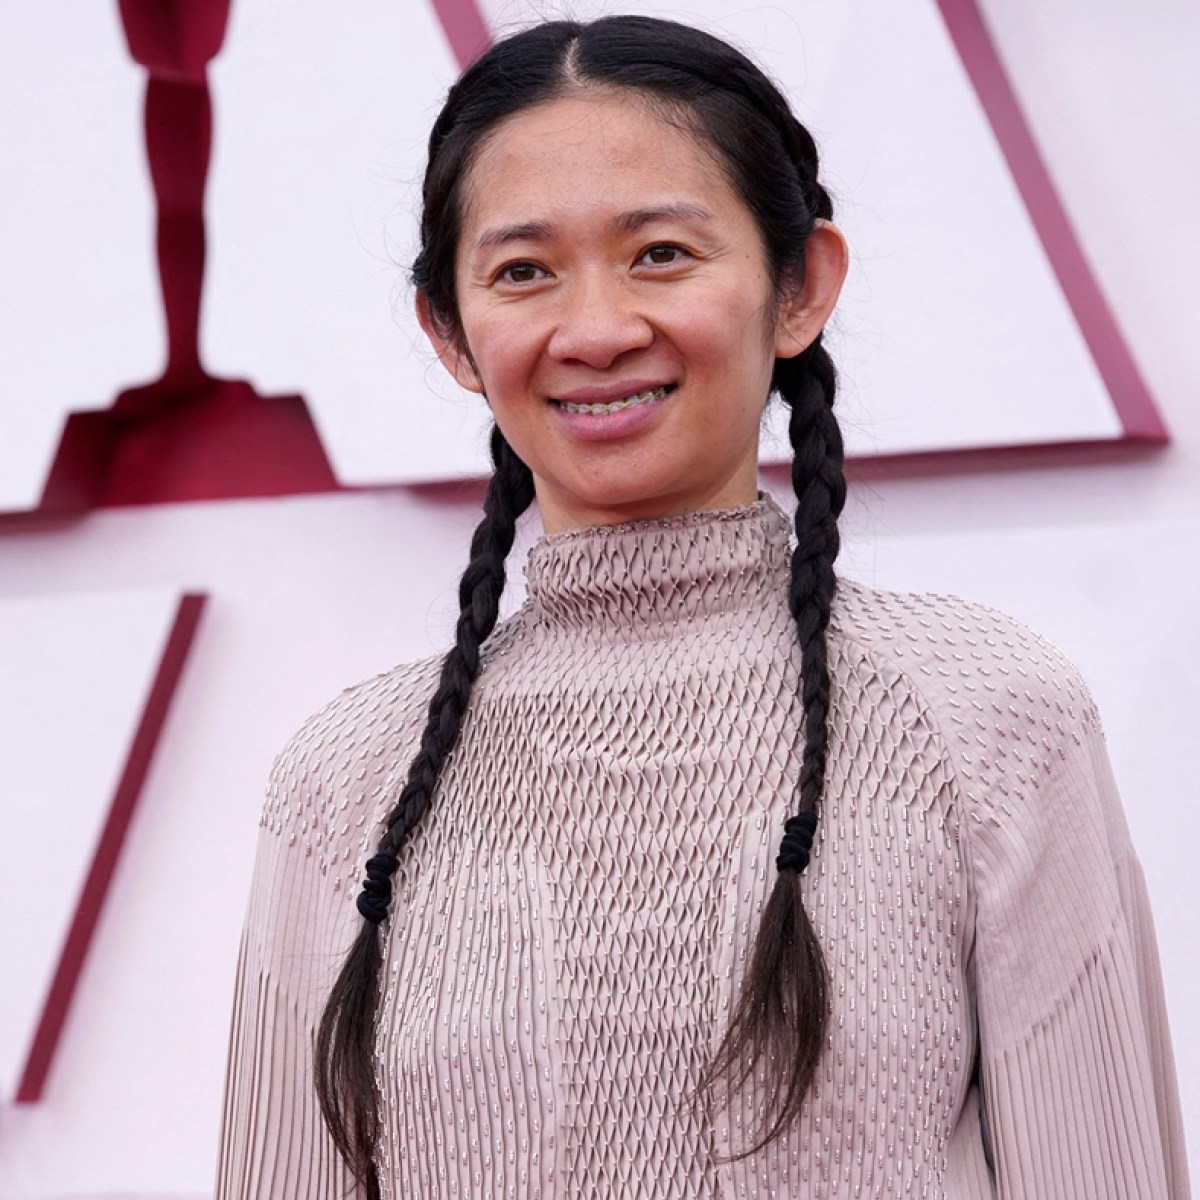 Oscars 2021: Chloe Zhao creates history by becoming first woman of colour and second woman in history to win best director